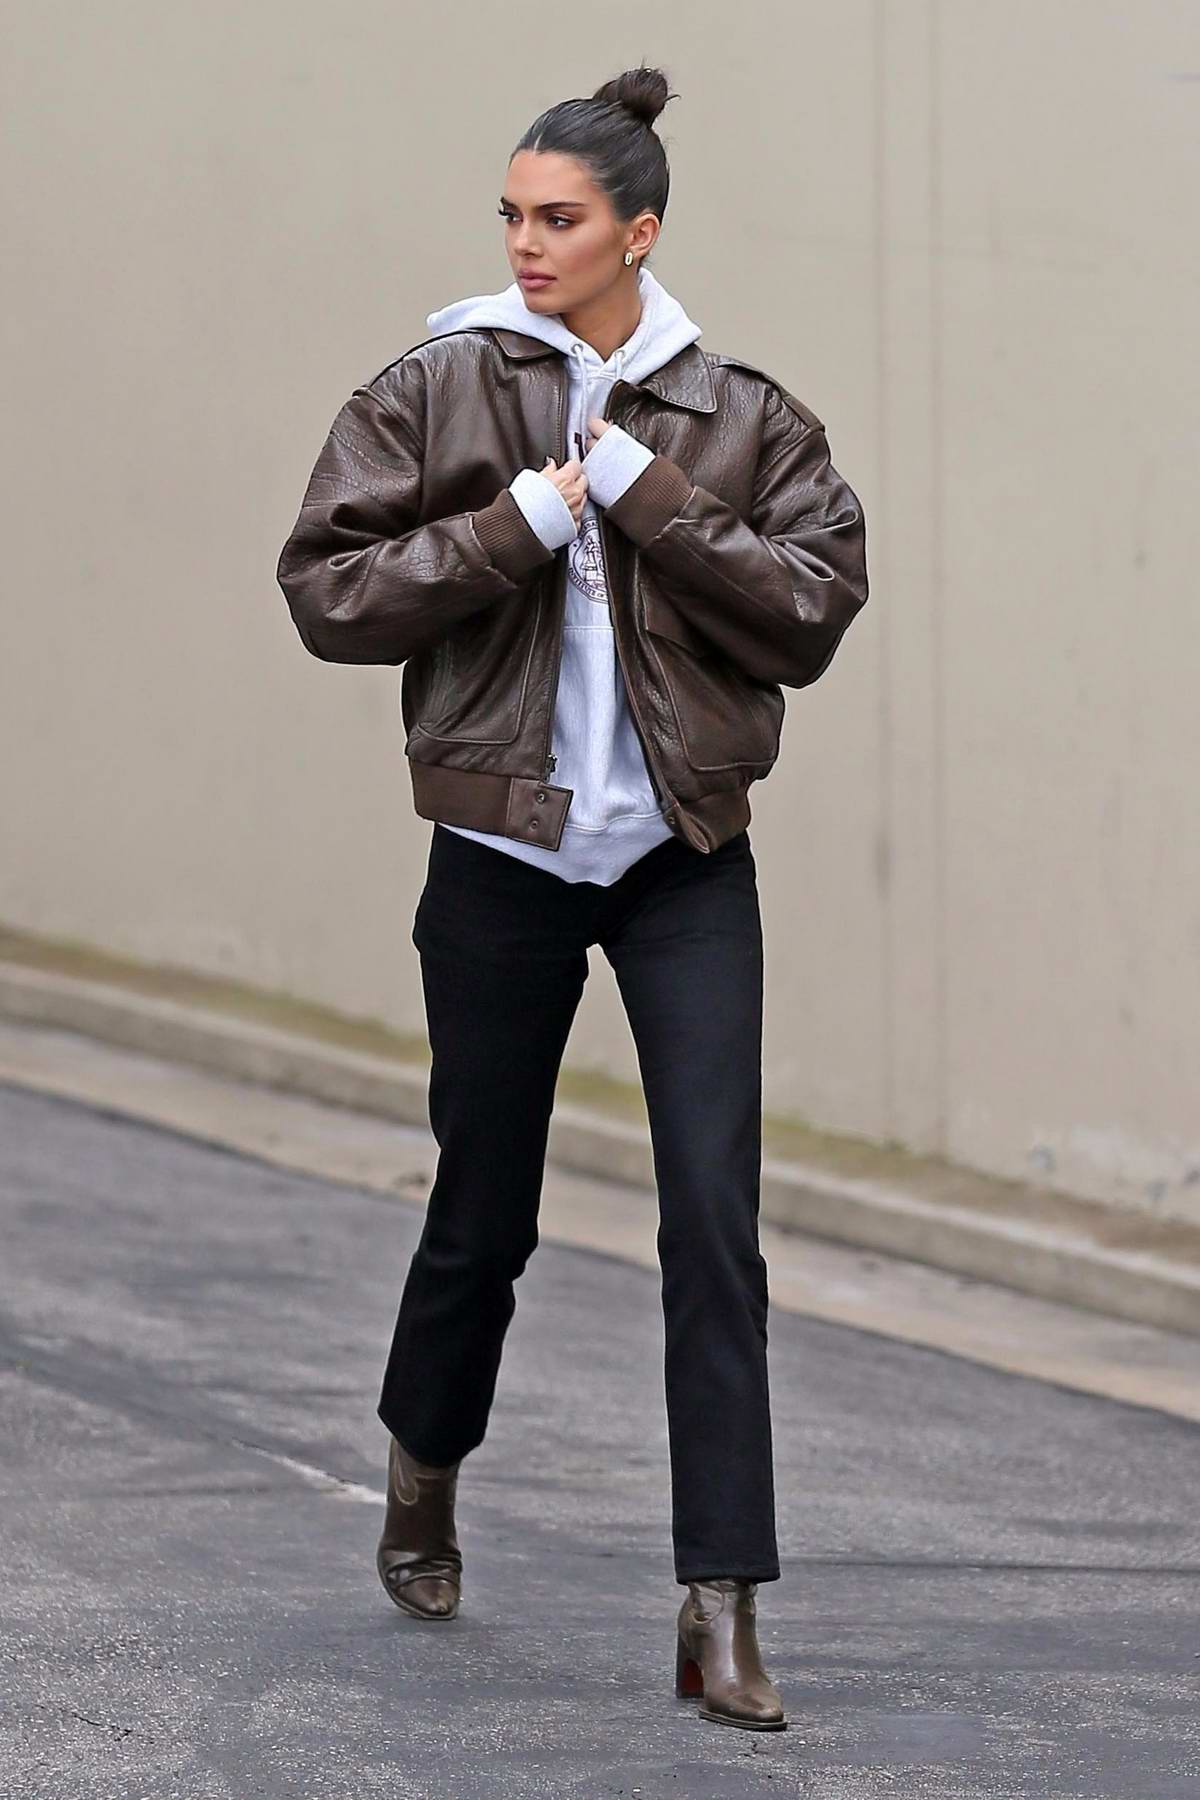 Kendall Jenner rocks a brown leather jacket paired with a